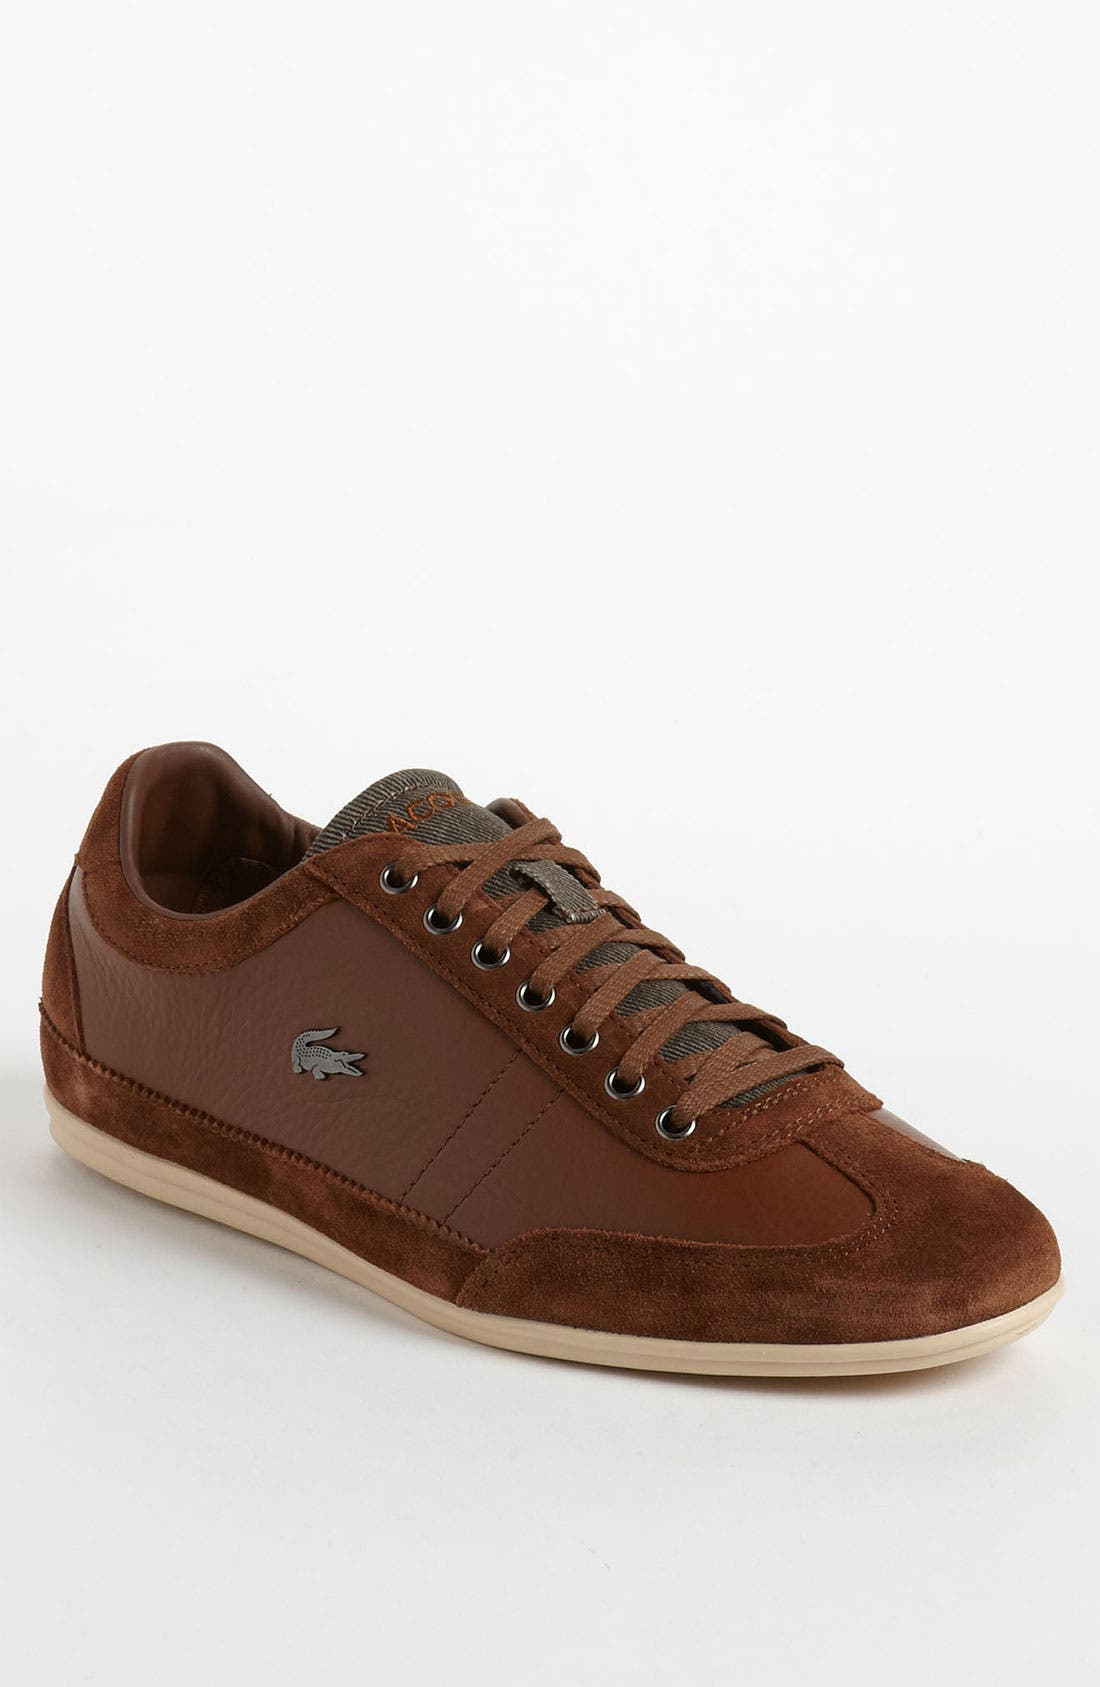 Alternate Image 1 Selected - Lacoste 'Misano 19' Sneaker (Men)